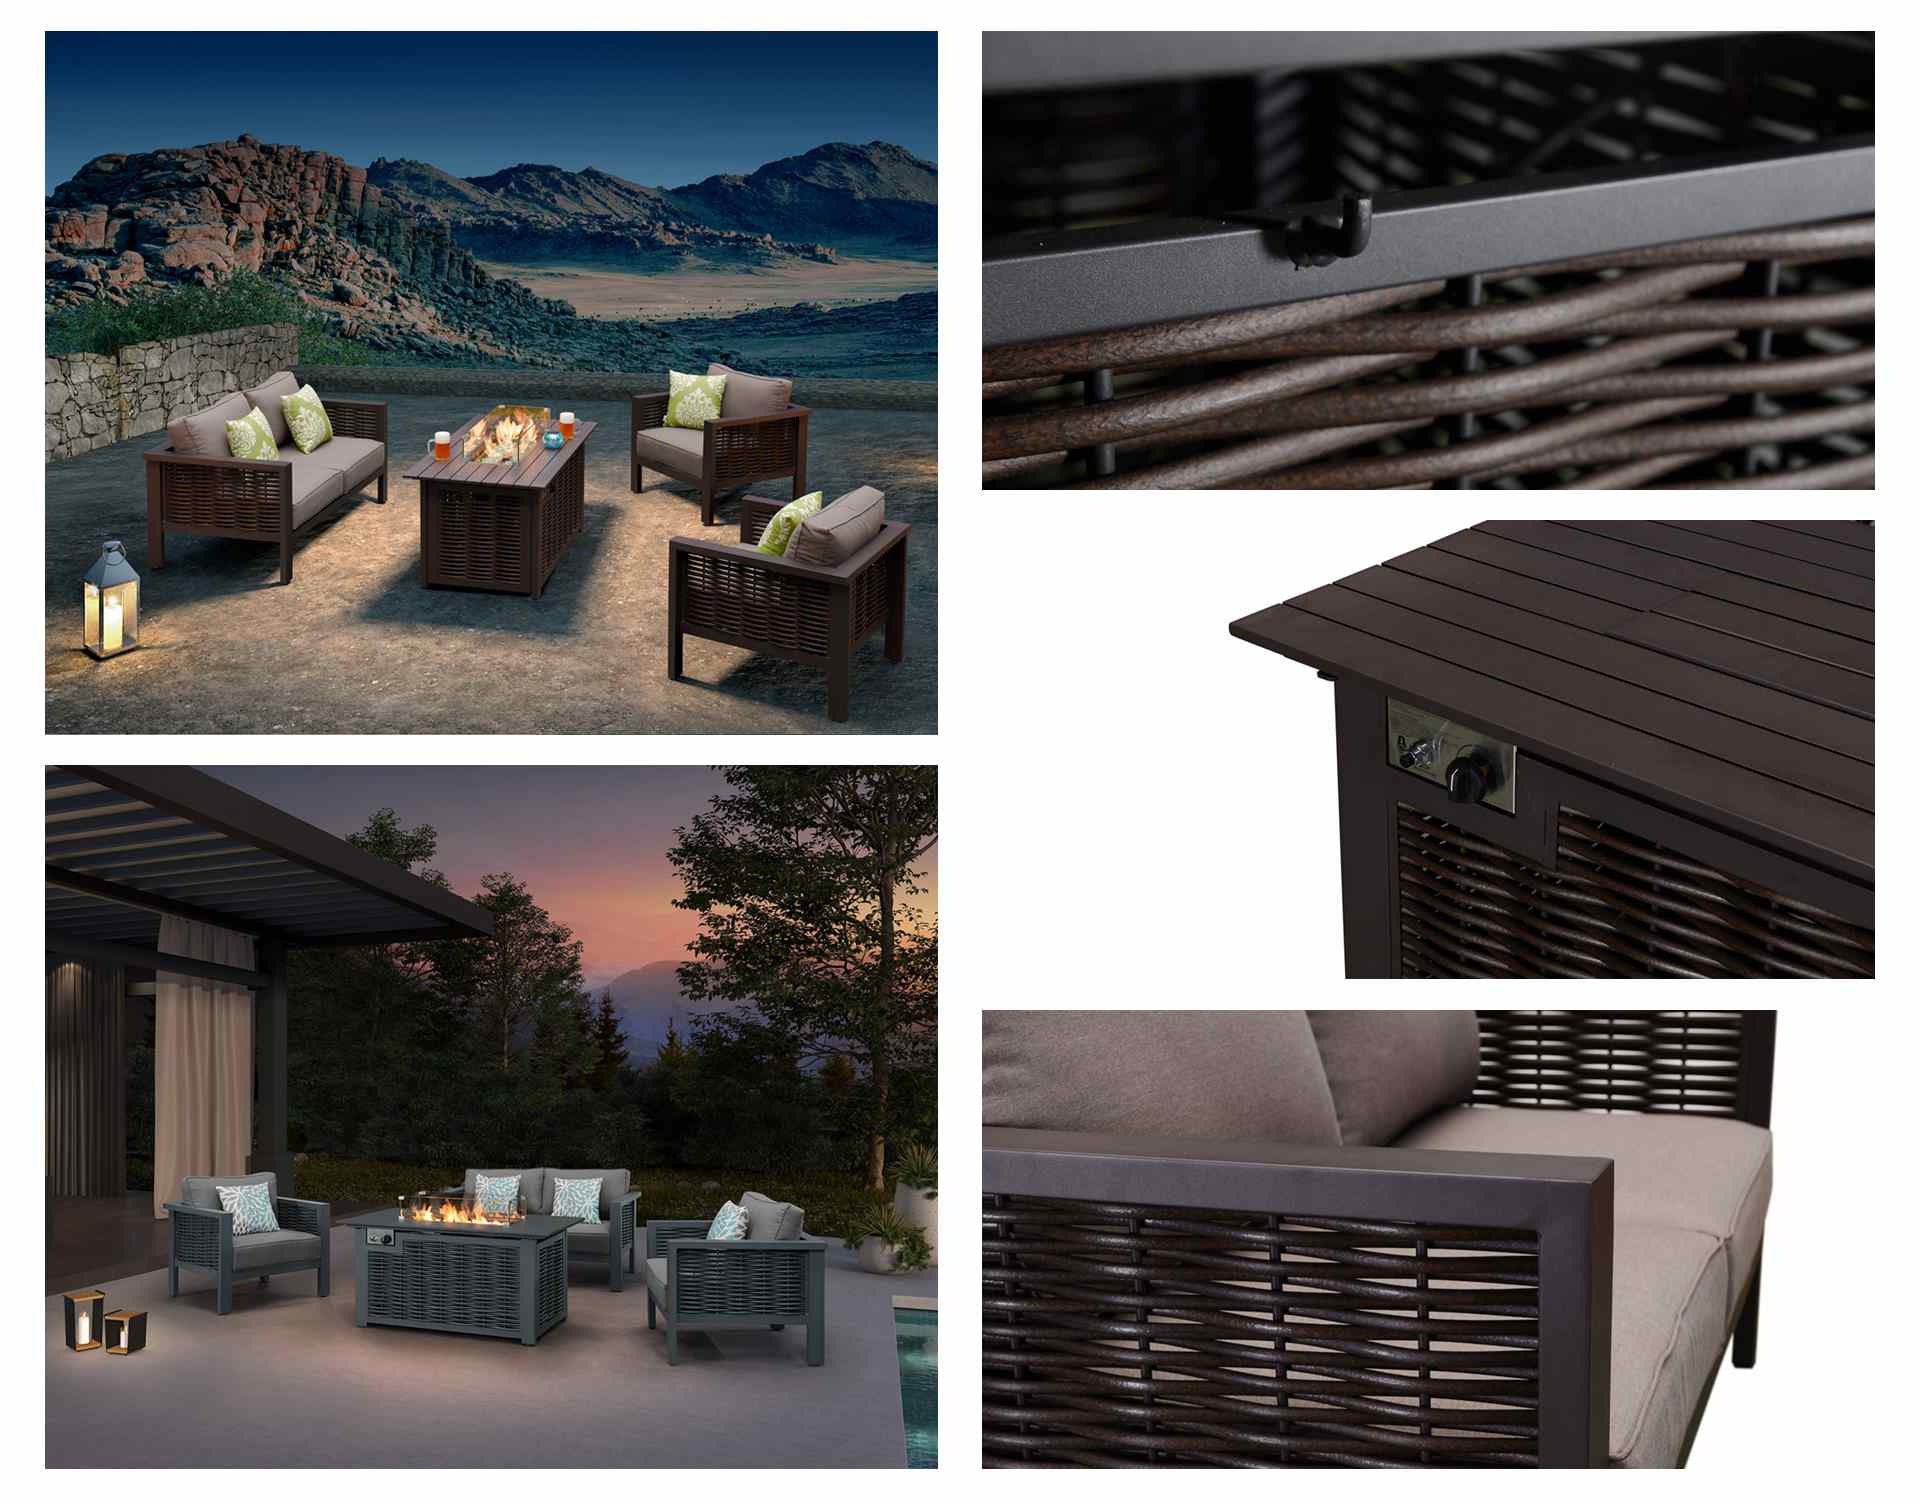 Patio tables with propane fire pits